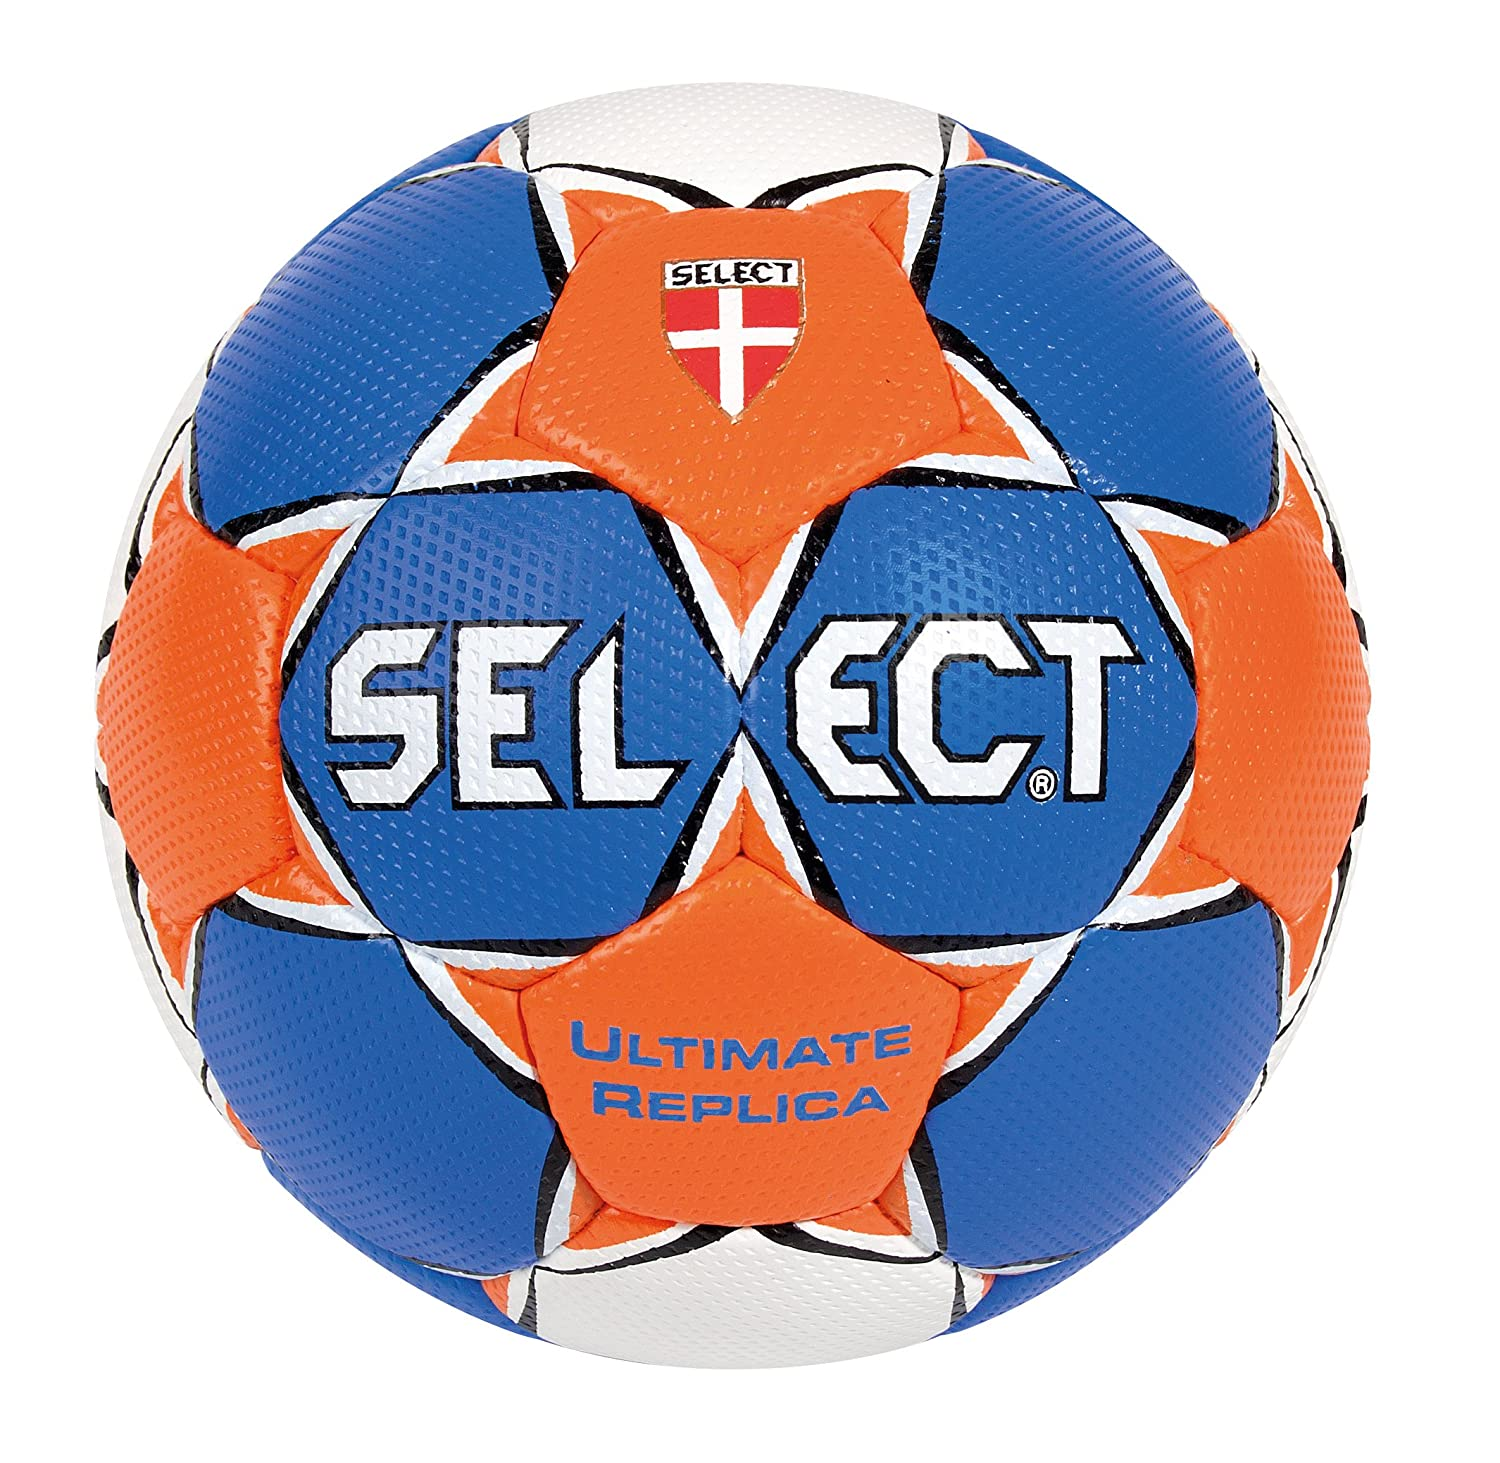 Select Ultimate - Balón de balonmano azul Blau/Orange/Weiß Talla:0